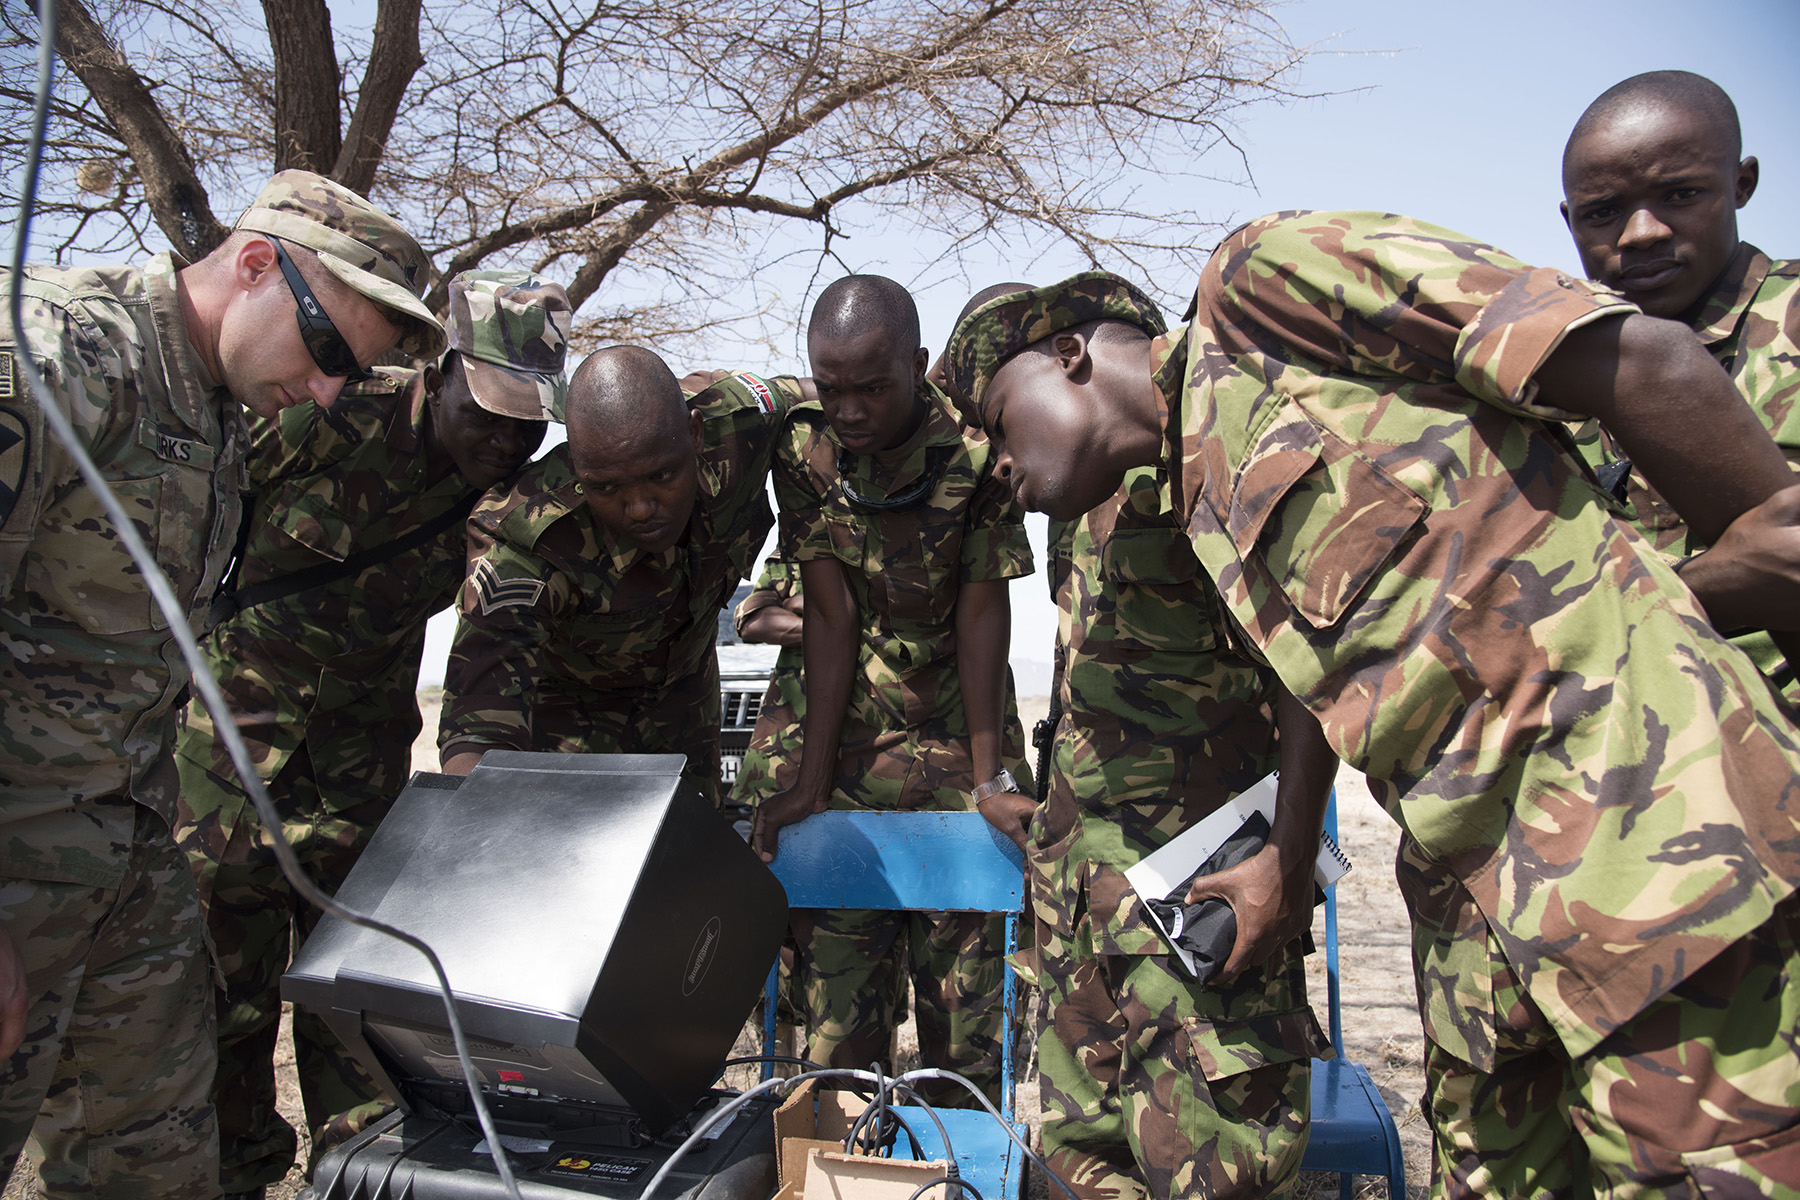 U.S. Army Staff Sgt. Charles Wirks, 1st Battalion, 124th Infantry Regiment and Raven master trainer, and members of the Kenya Defense Forces Military Intelligence Battalion set up a computer system in preparation to fly the AeroVironment RQ-11 Raven, an unmanned aerial vehicle, Sept. 13, 2016, at a Kenyan training facility. U.S. Army Soldiers from the 1/124th Inf. Rgt., assigned to Combined Joint Task Force-Horn of Africa, provided basic training on assembly, disassembly, repair, and preventative maintenance in regard to basic mission planning and advanced flight plans for the Raven. (U.S. Air Force photo by Staff Sgt. Tiffany DeNault)